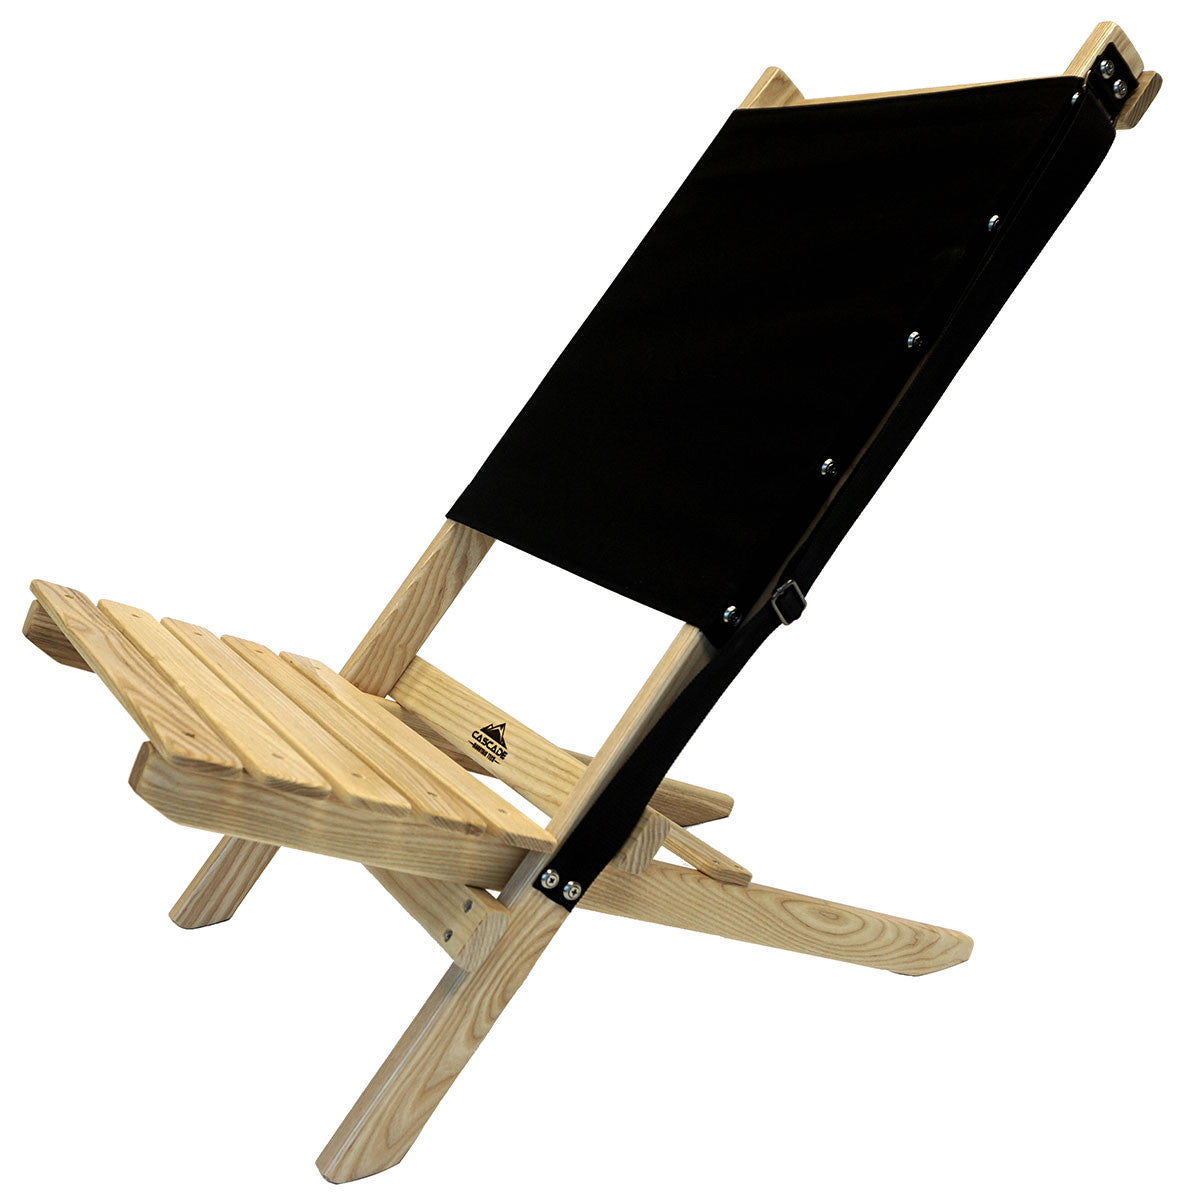 Cascade Mountain Tech Ash Wood Beach Chair  sc 1 st  Cascade Mountain Tech & Ash Wood Beach Chair u2013 Cascade Mountain Tech